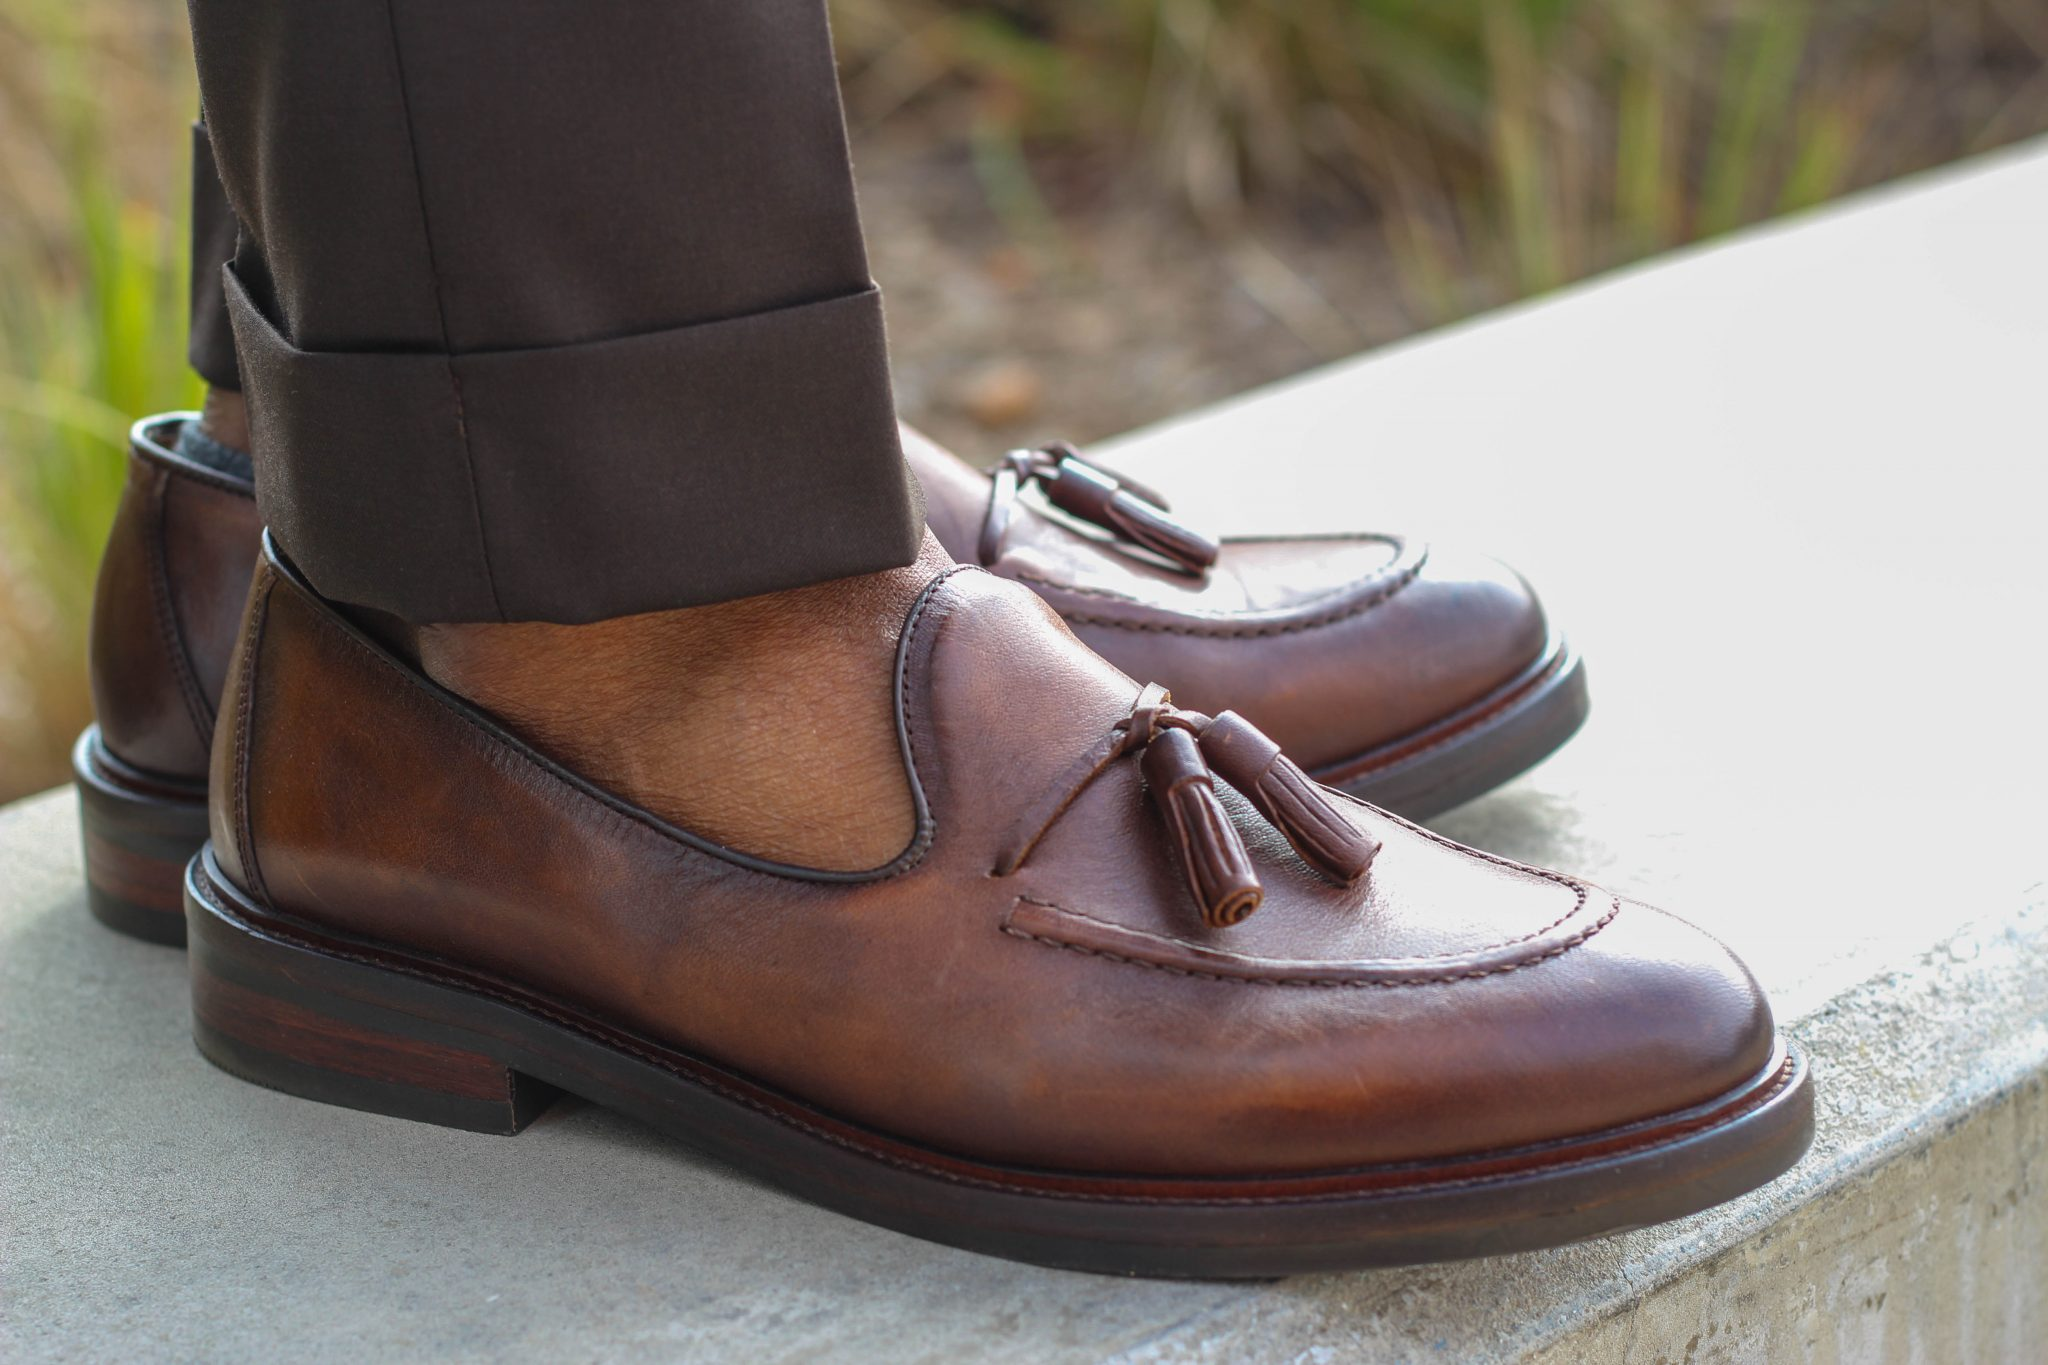 5 Brown Dress Shoes That Every Guy Should Own